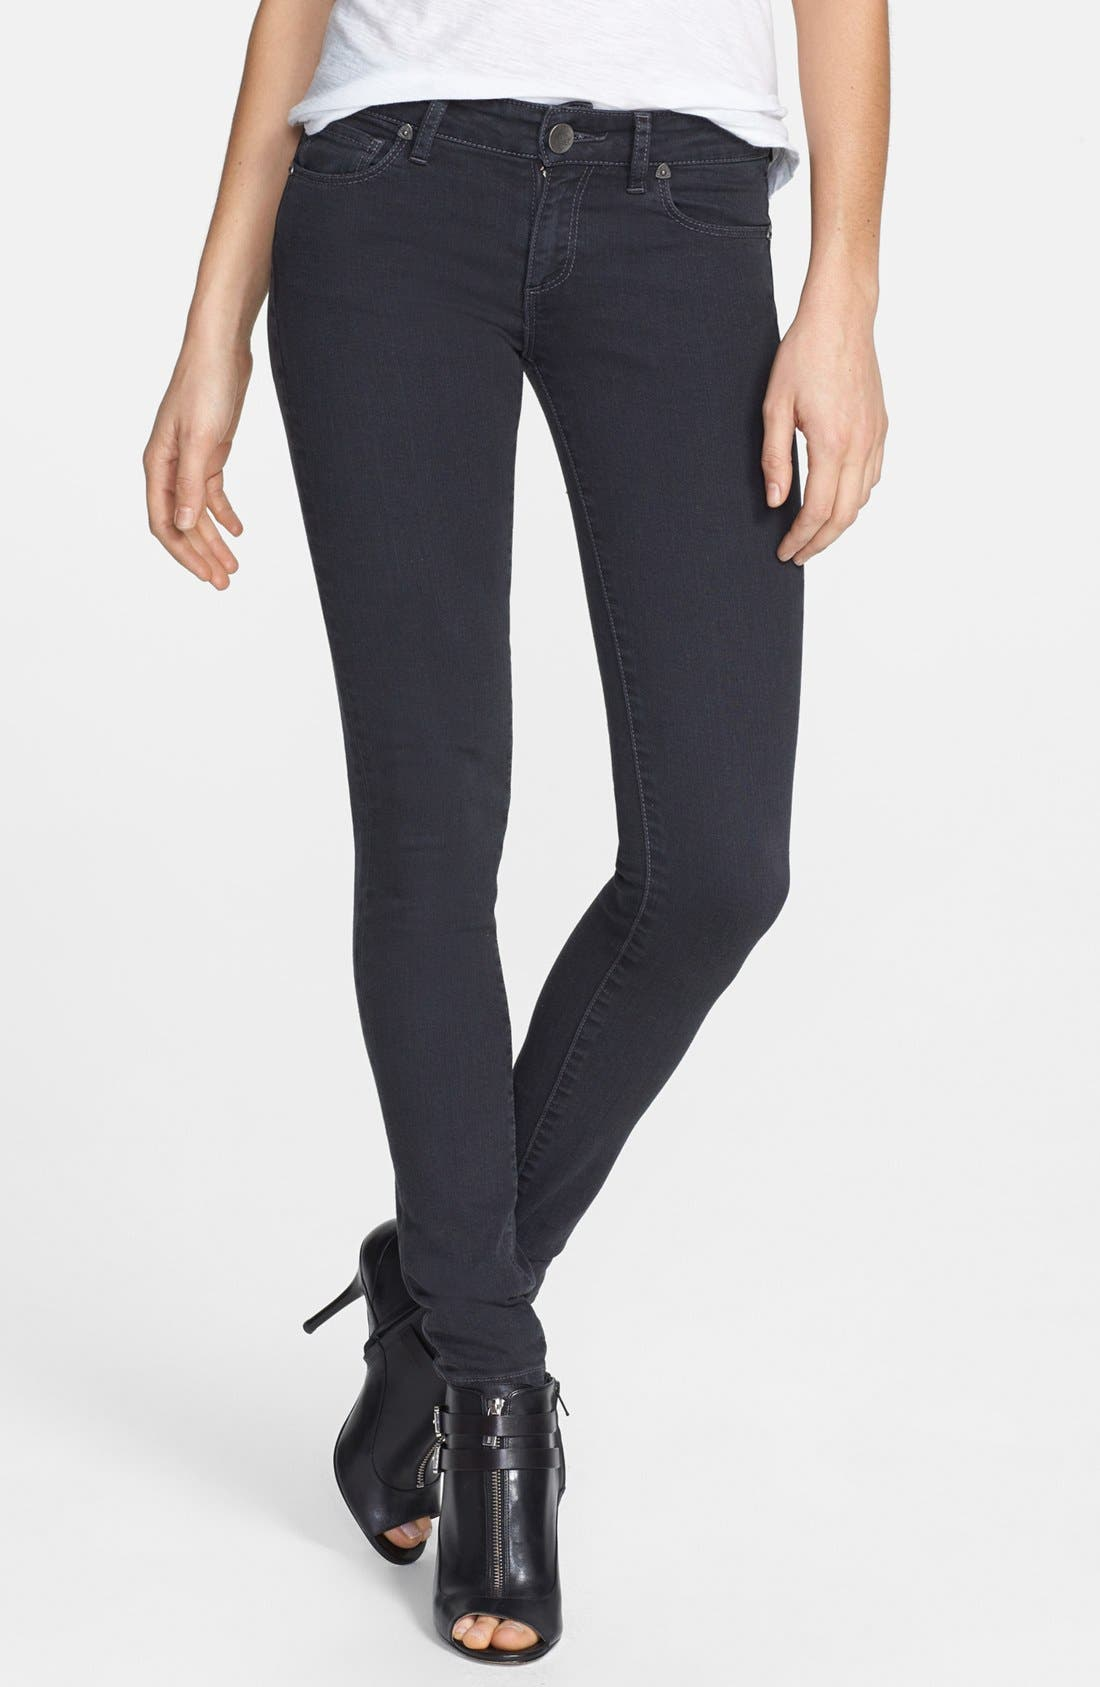 Alternate Image 1 Selected - KUT from the Kloth 'Elle' Skinny Jeans (Interest)